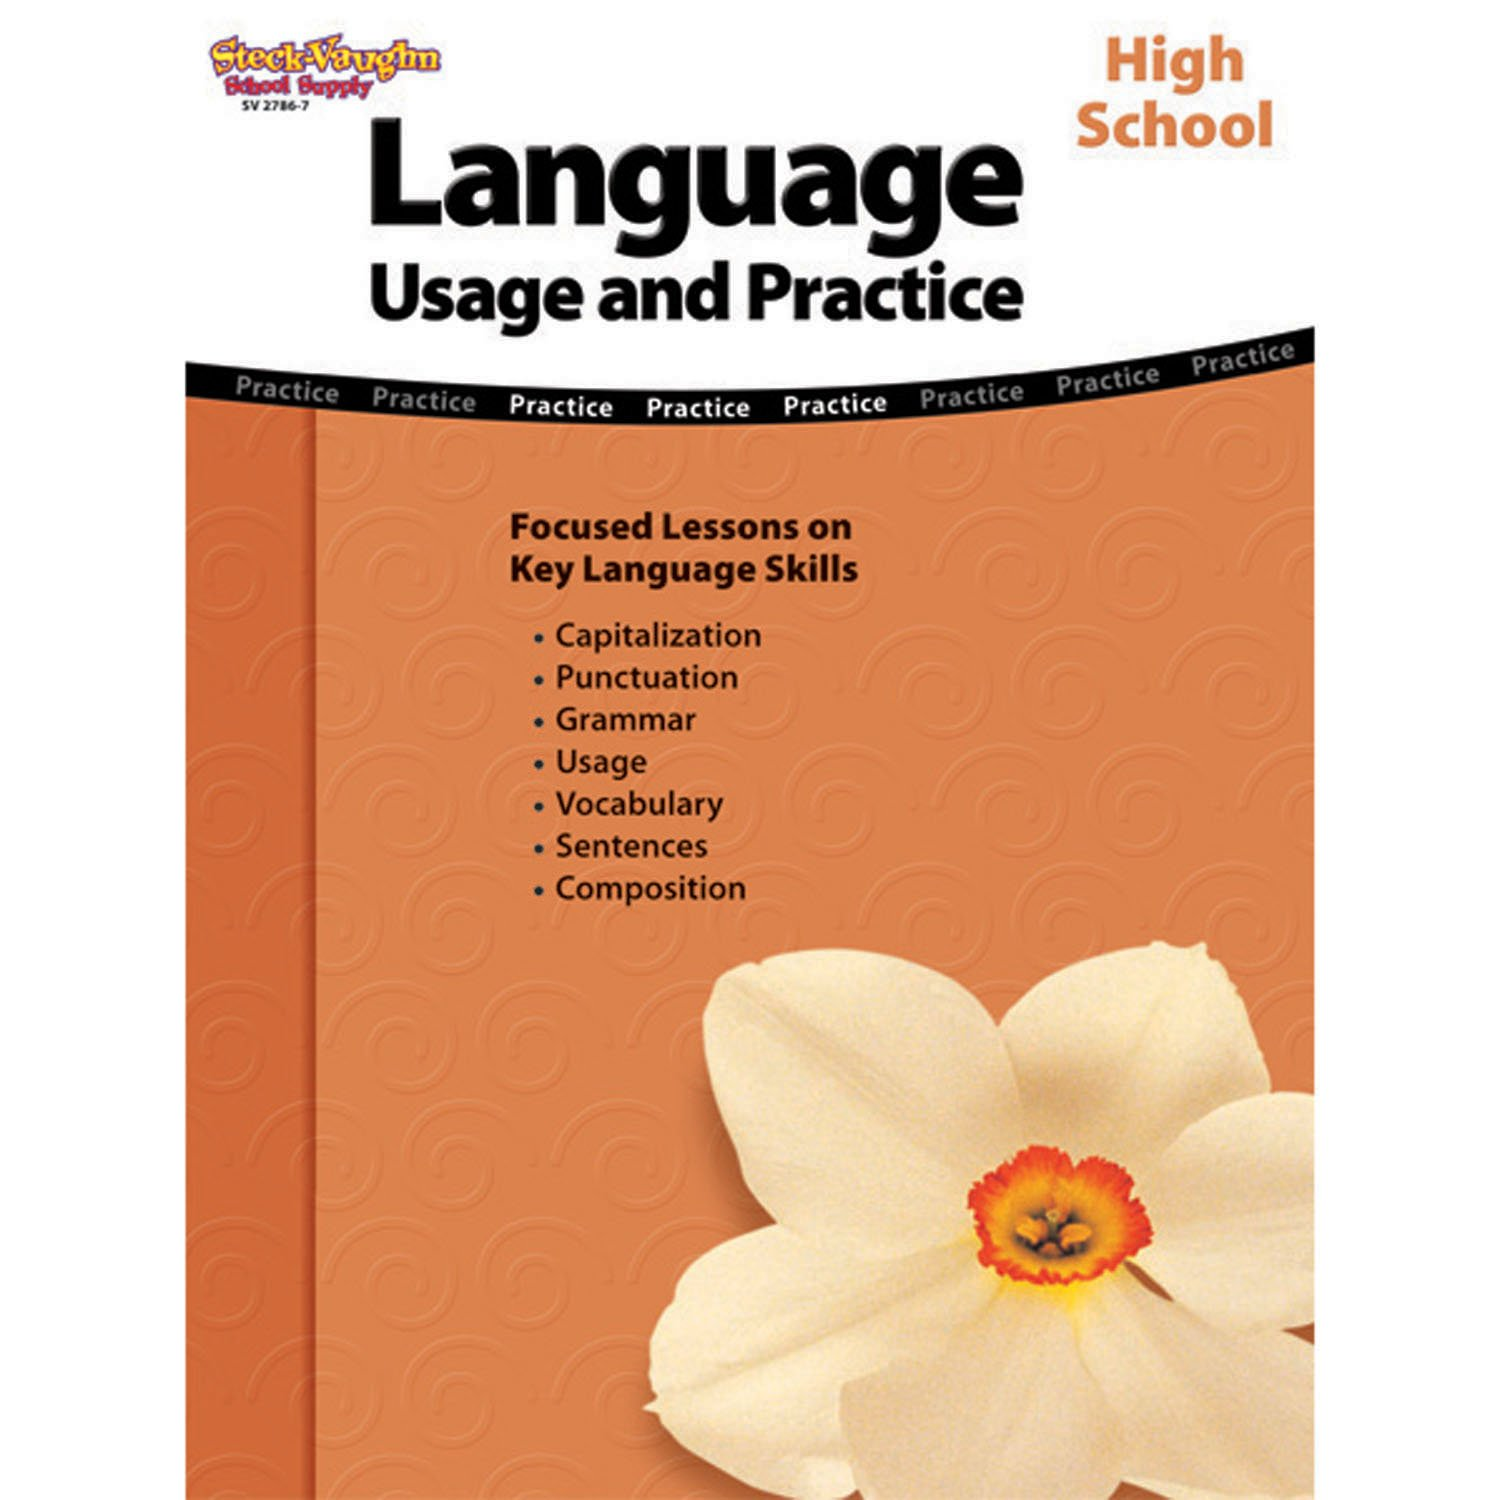 Language: Usage and Practice: Reproducible High School by HOUGHTON MIFFLIN HARCOURT